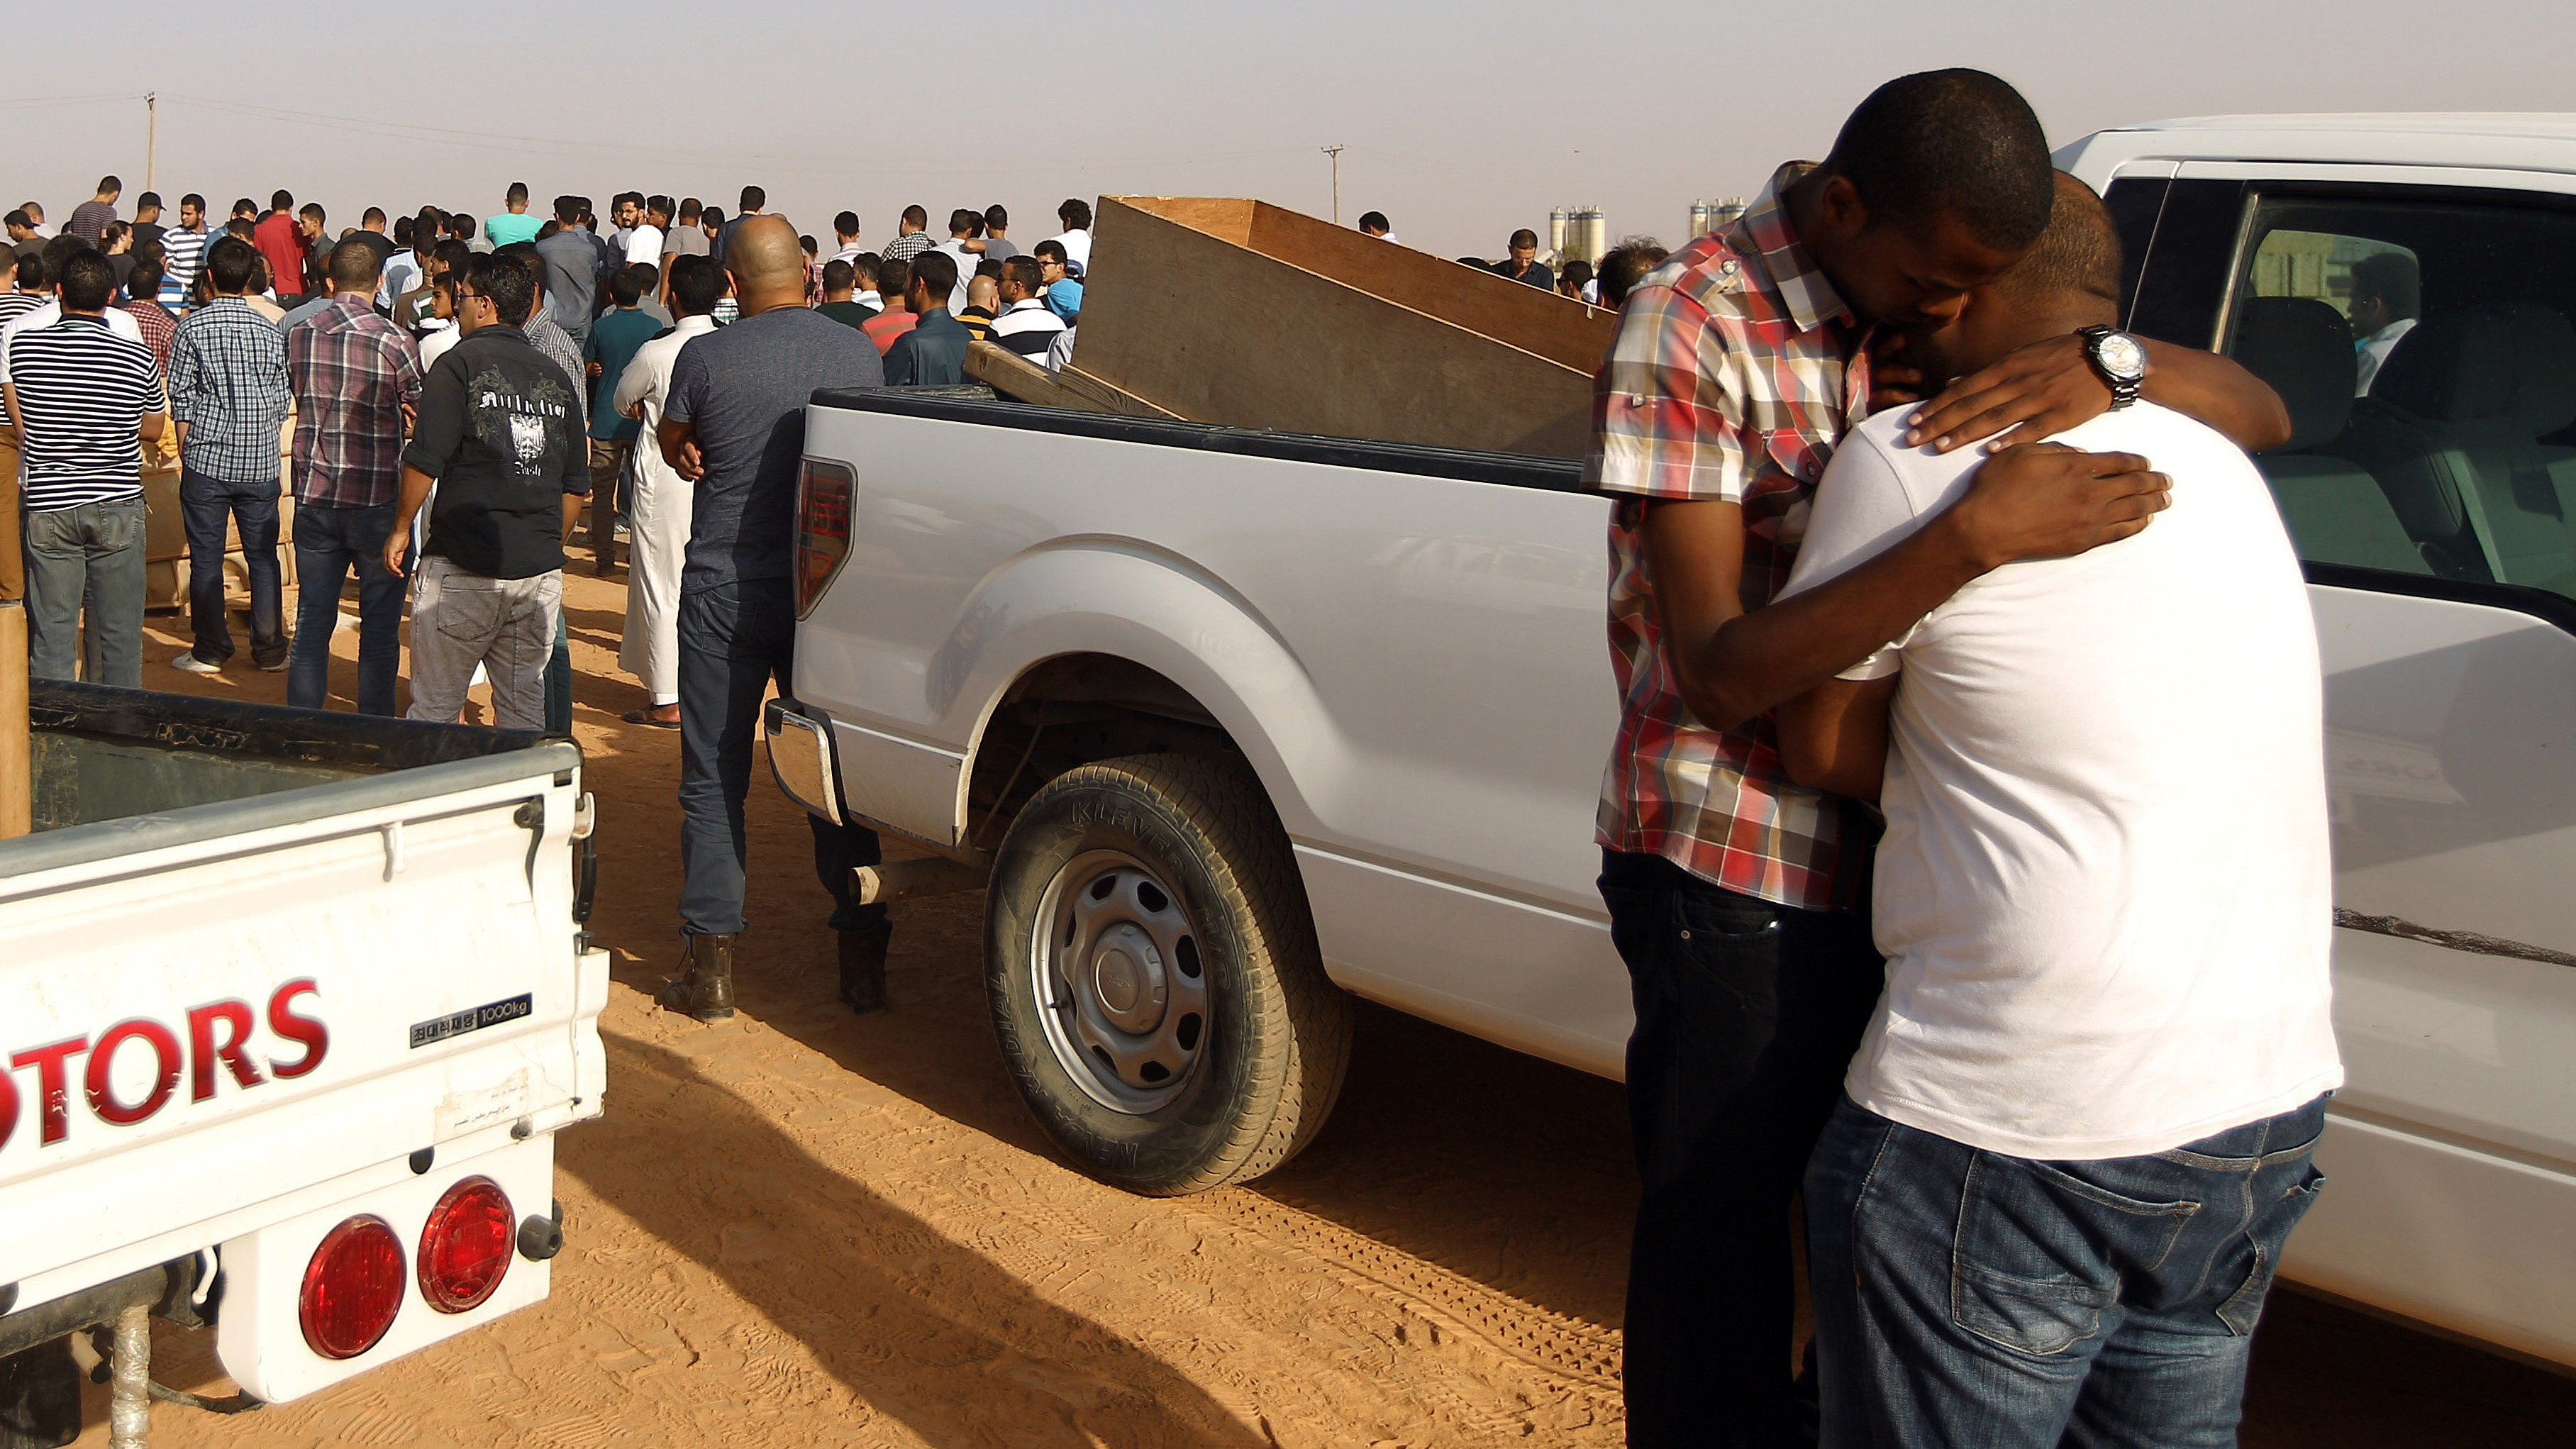 Two men hug during the funeral for Libyan activist Tawfik Bin Saud in Benghazi on September 20, 2014. Tawfik was killed, along with a friend, late on September 19, by unknown gunmen as they were driving home in Libya's eastern coastal city of Benghazi.